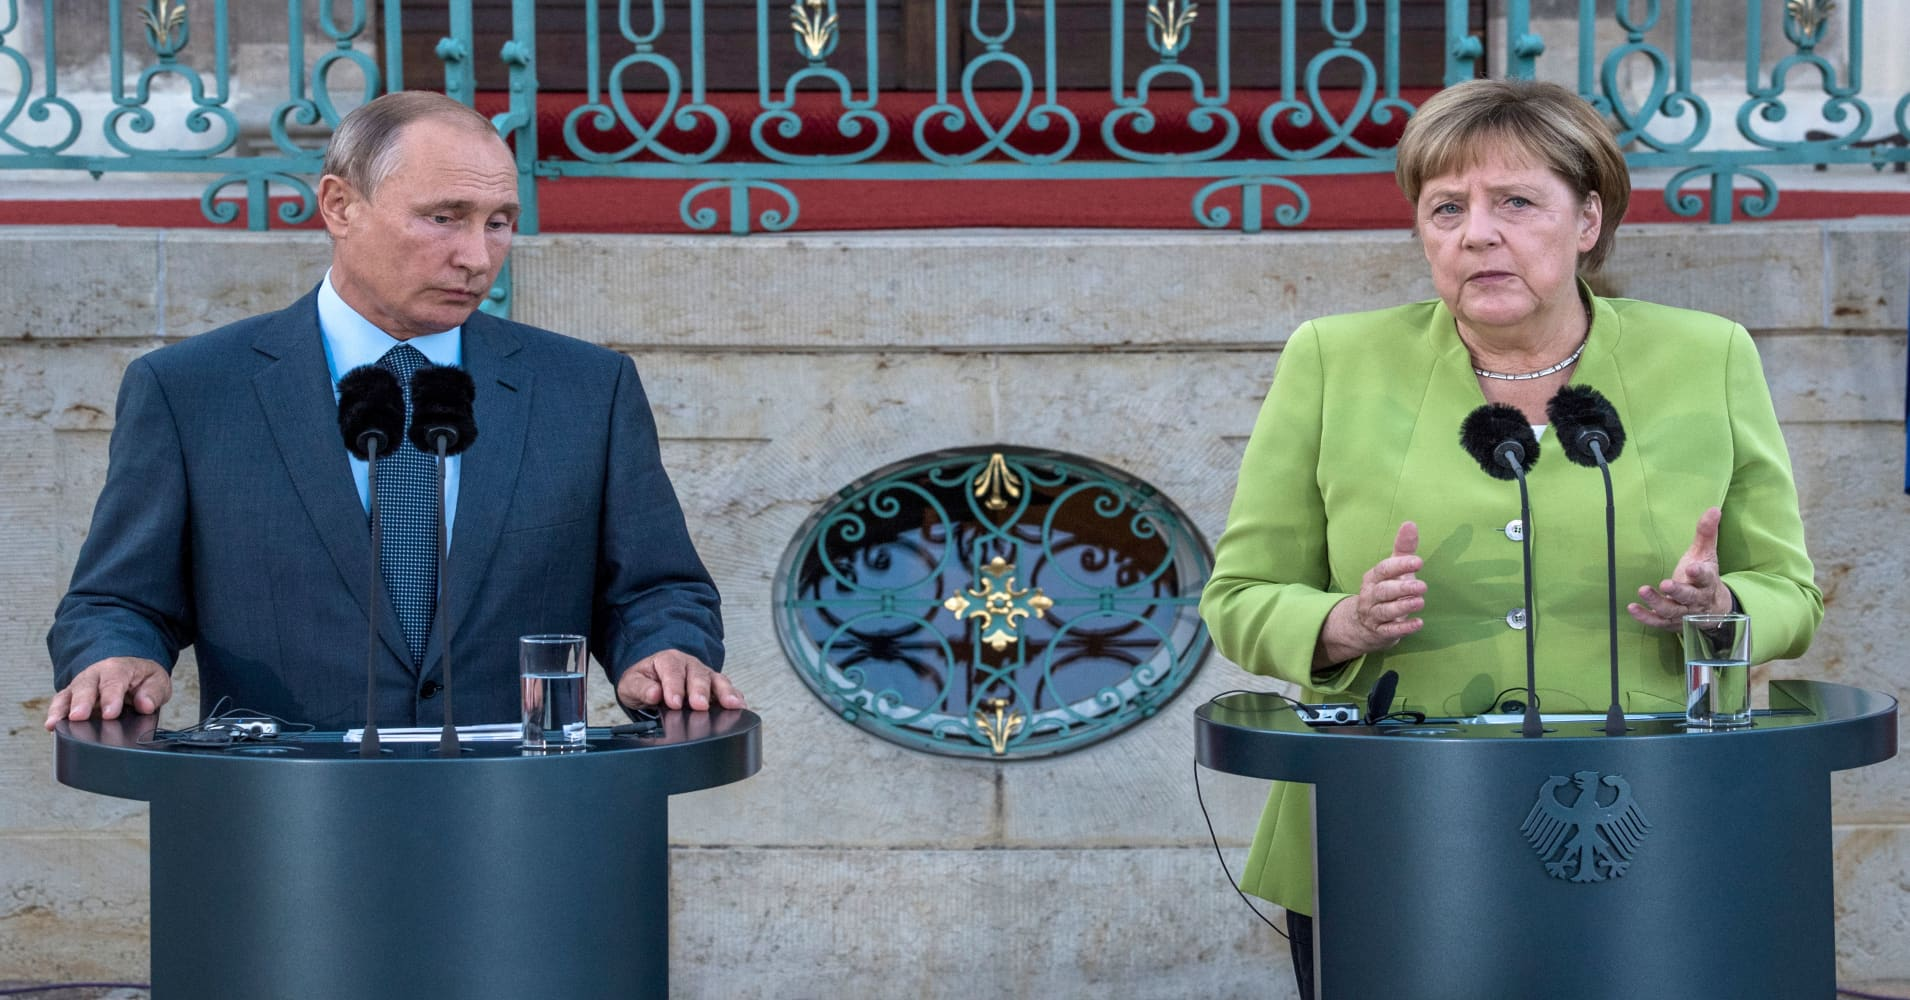 Merkel: We sanction Russia for the sake of international law